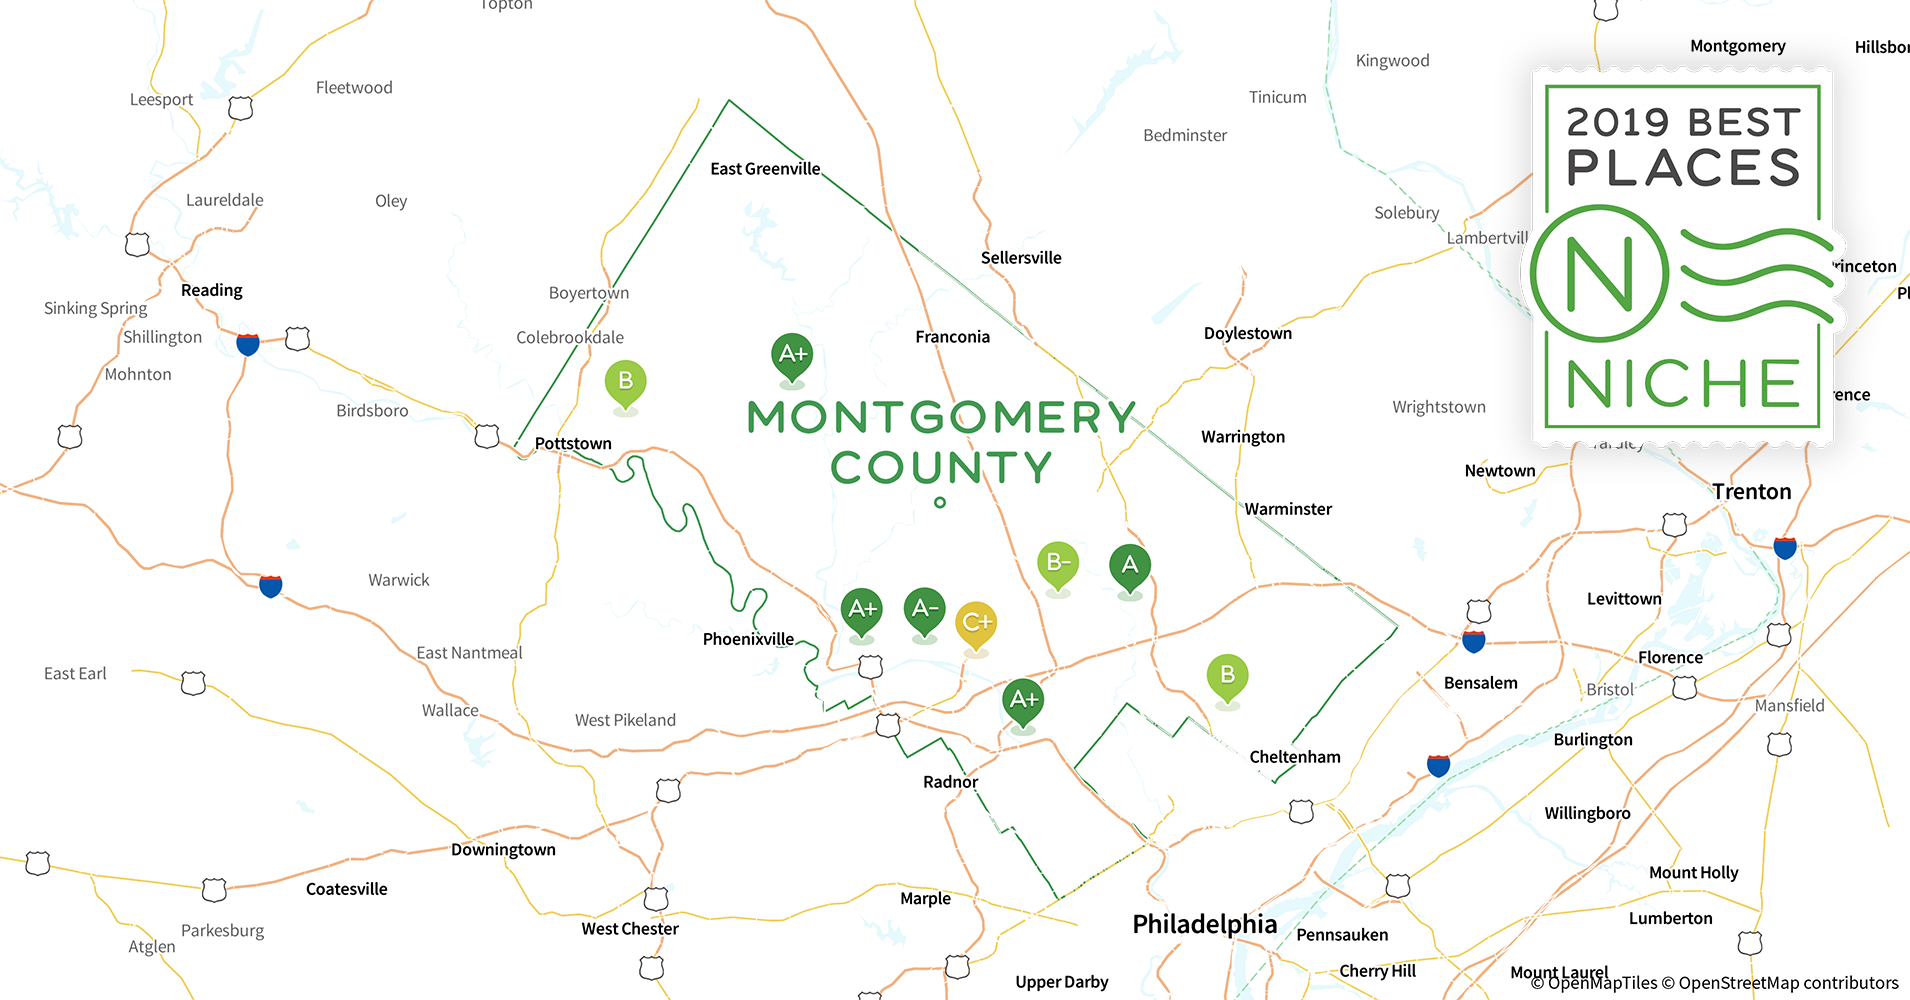 2019 Best Places to Raise a Family in Montgomery County, PA